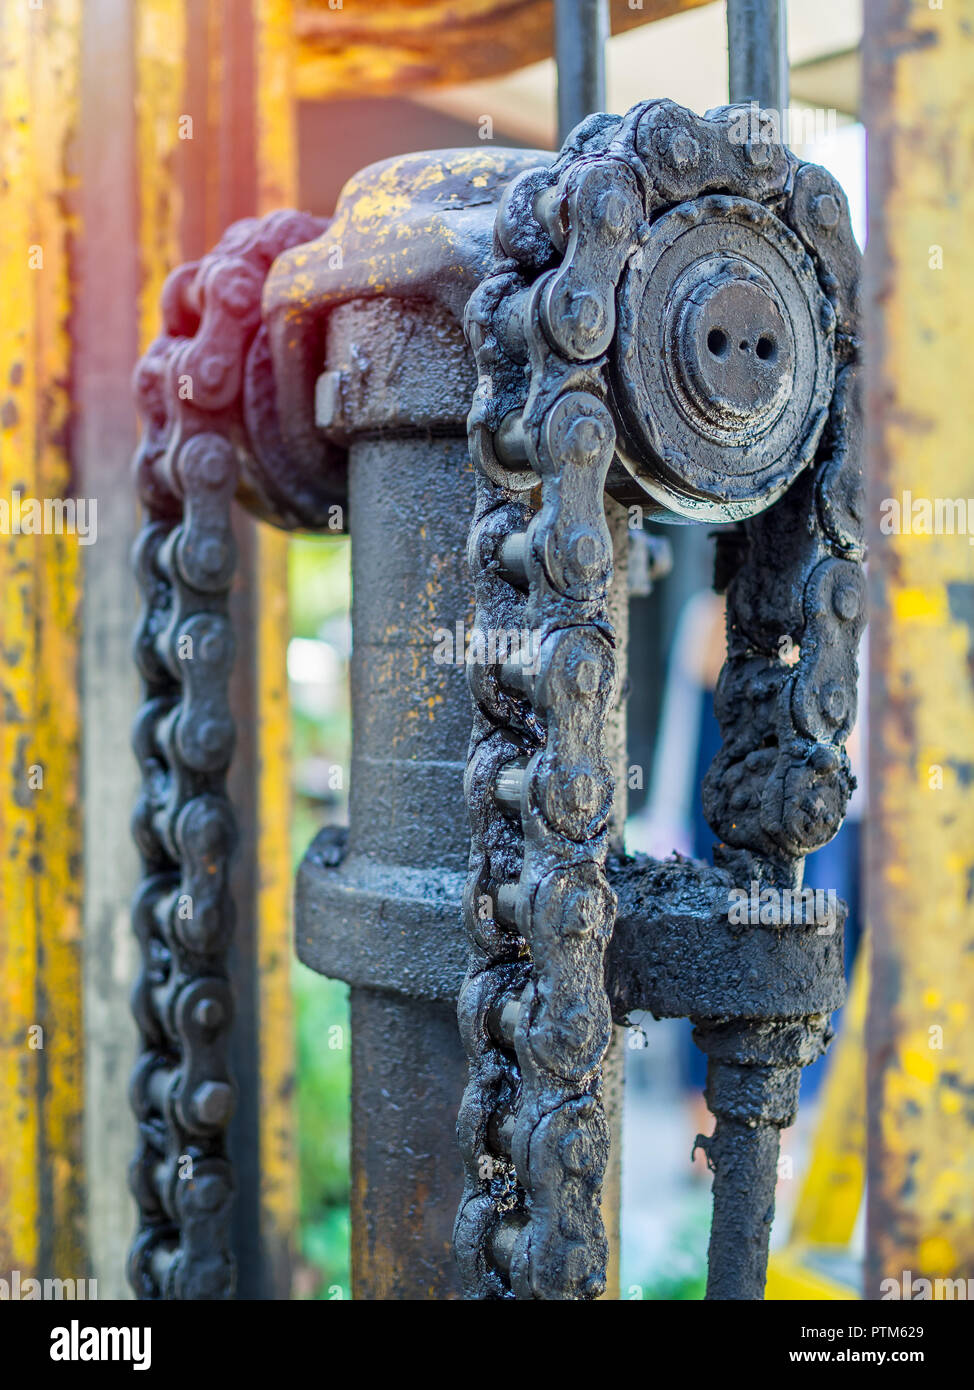 Close-up dirty and greasy chain of old forklifts with engine